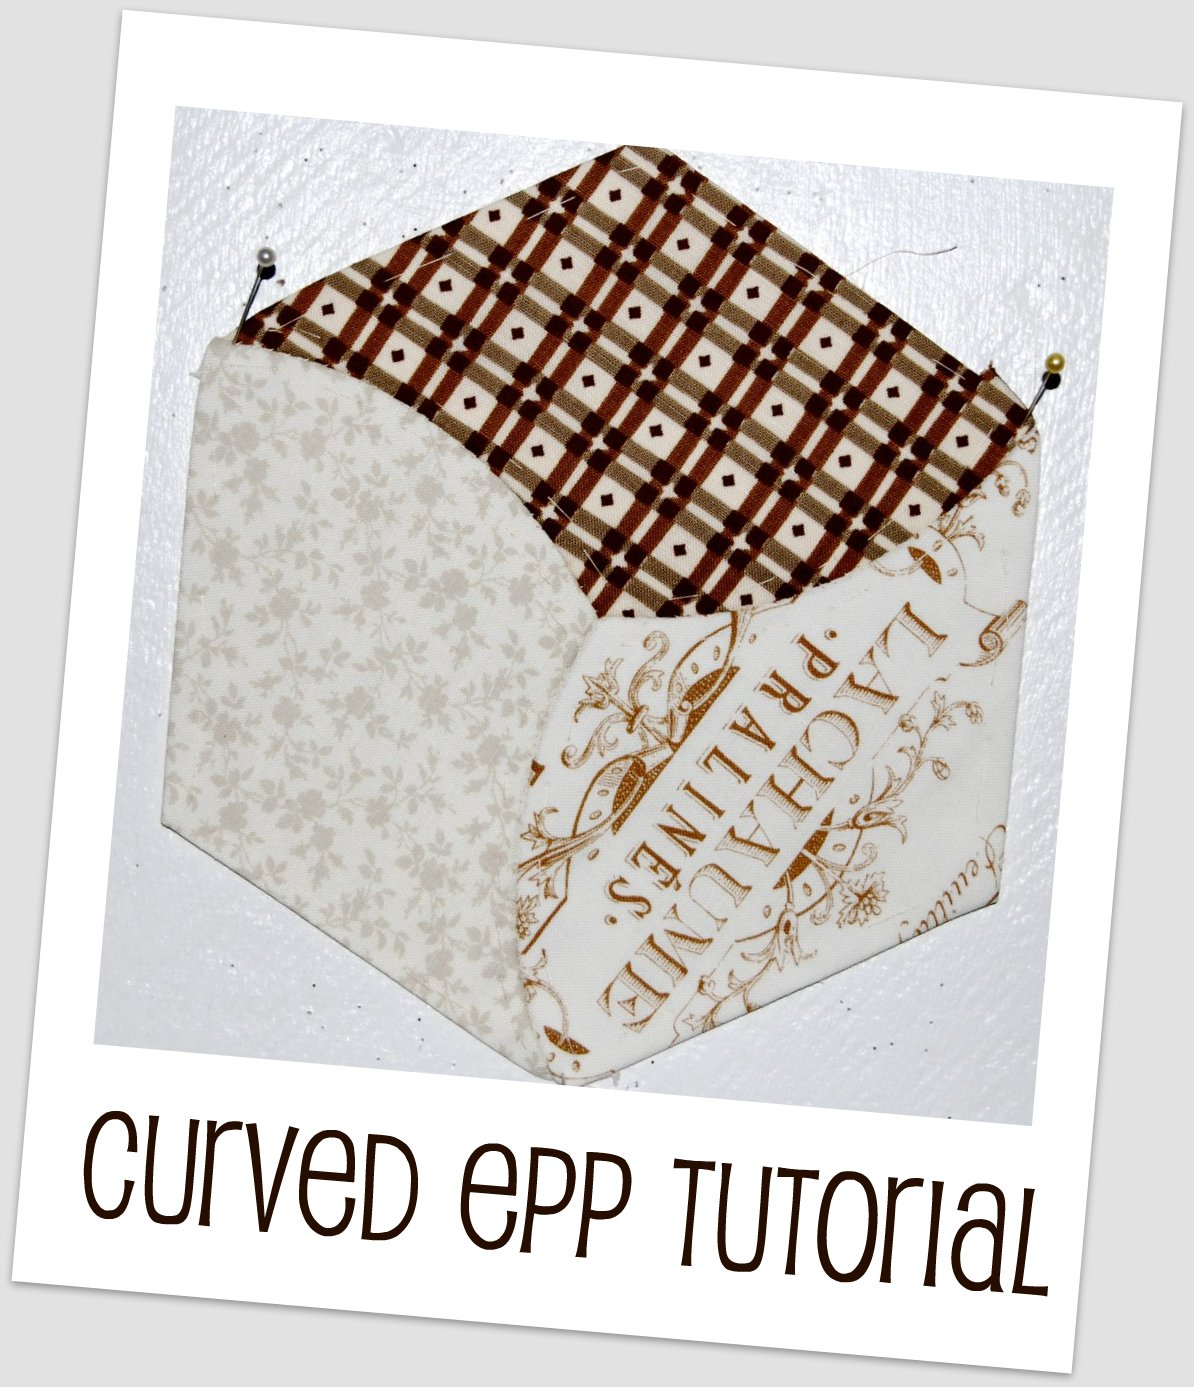 Curved EPP tutorial